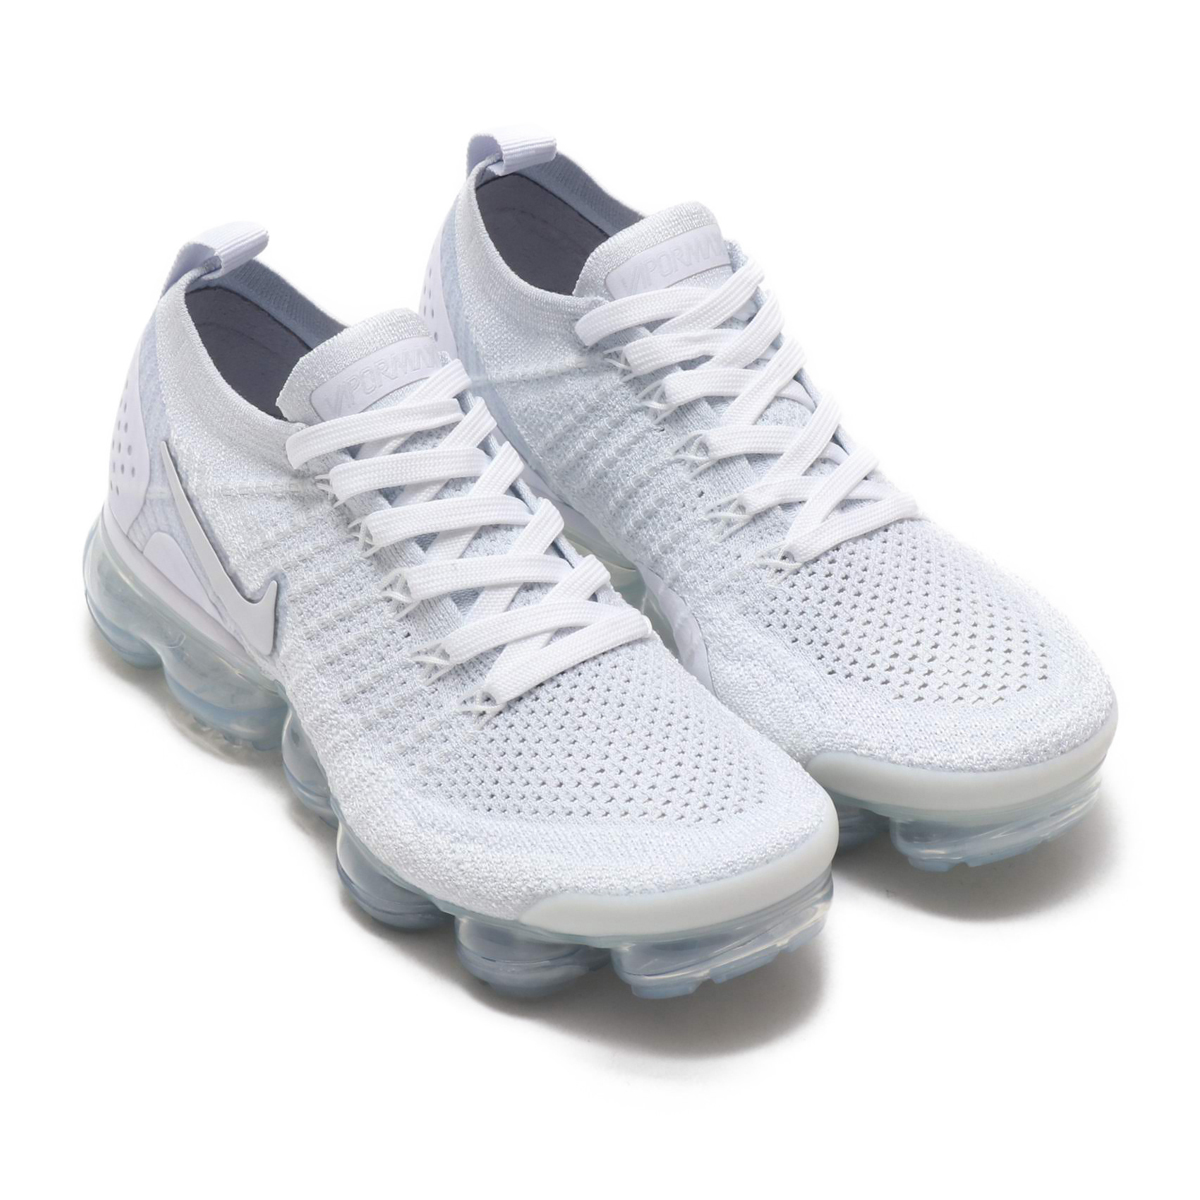 NIKE W AIR VAPORMAX FLYKNIT 2 (Nike women air vapor max fried food knit 2)  WHITE WHITE-VAST GREY-FOOTBALL GREY 18FA-S c582ec99a9a0